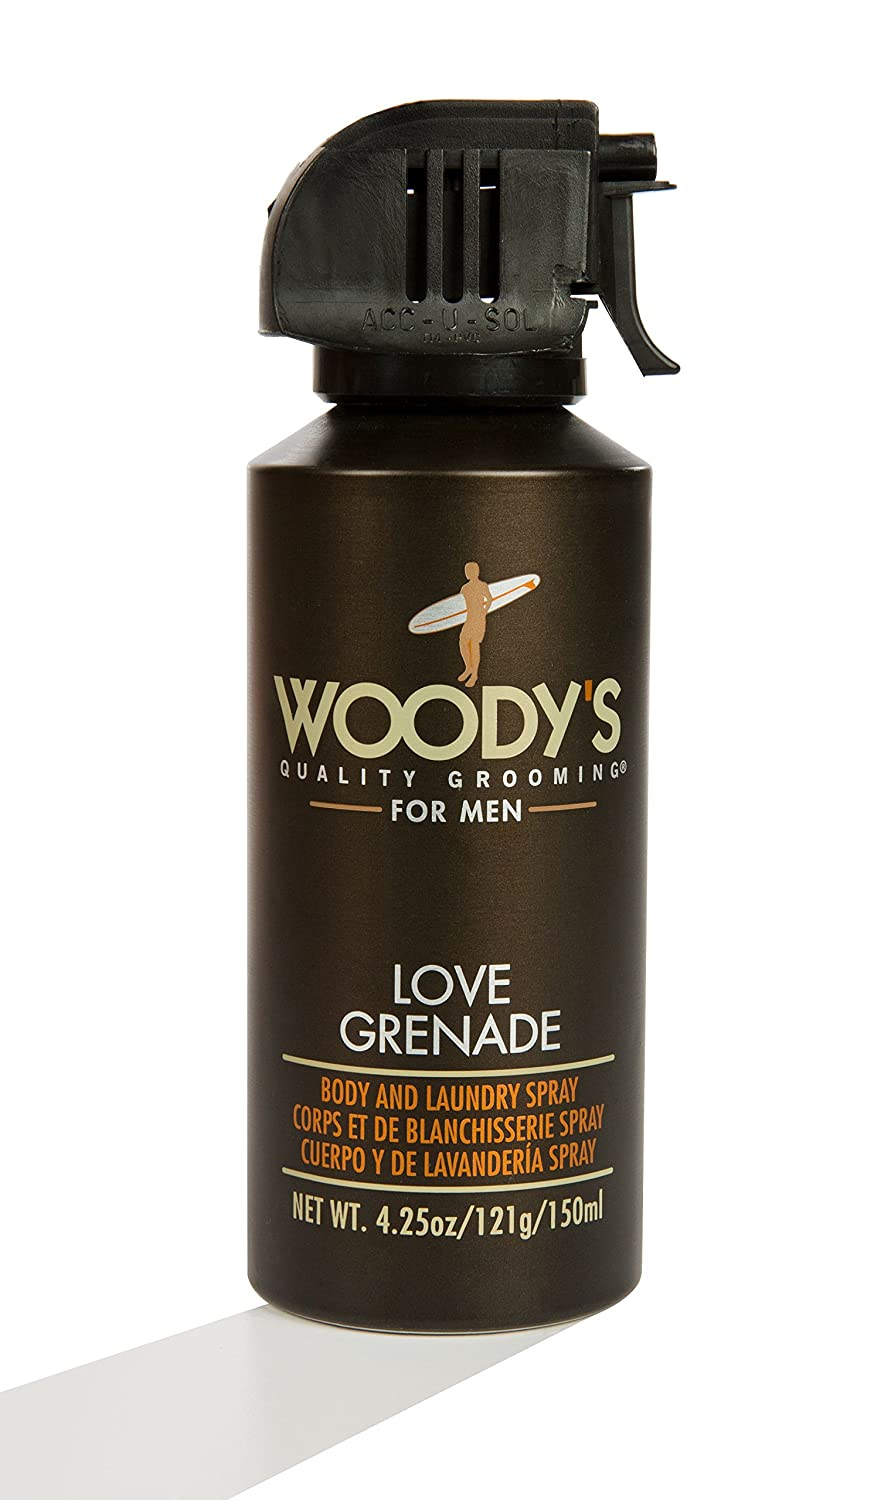 Woody's Body and Laundry Deo Spray, 4.25 Ounce